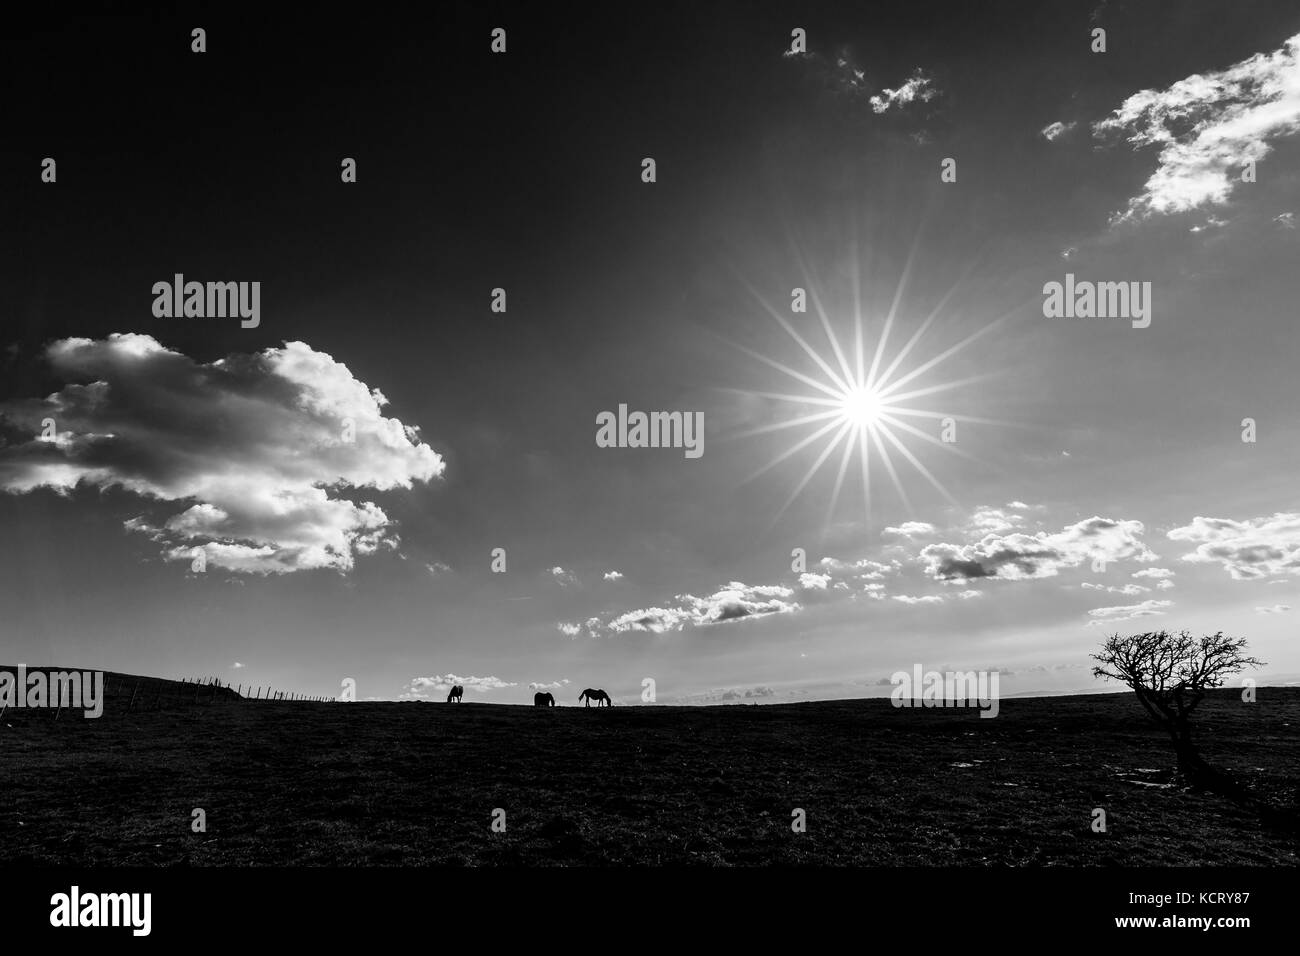 A very sharp sun star in the sky, with some horses on the left and a plant on the right, on top of a mountain - Stock Image